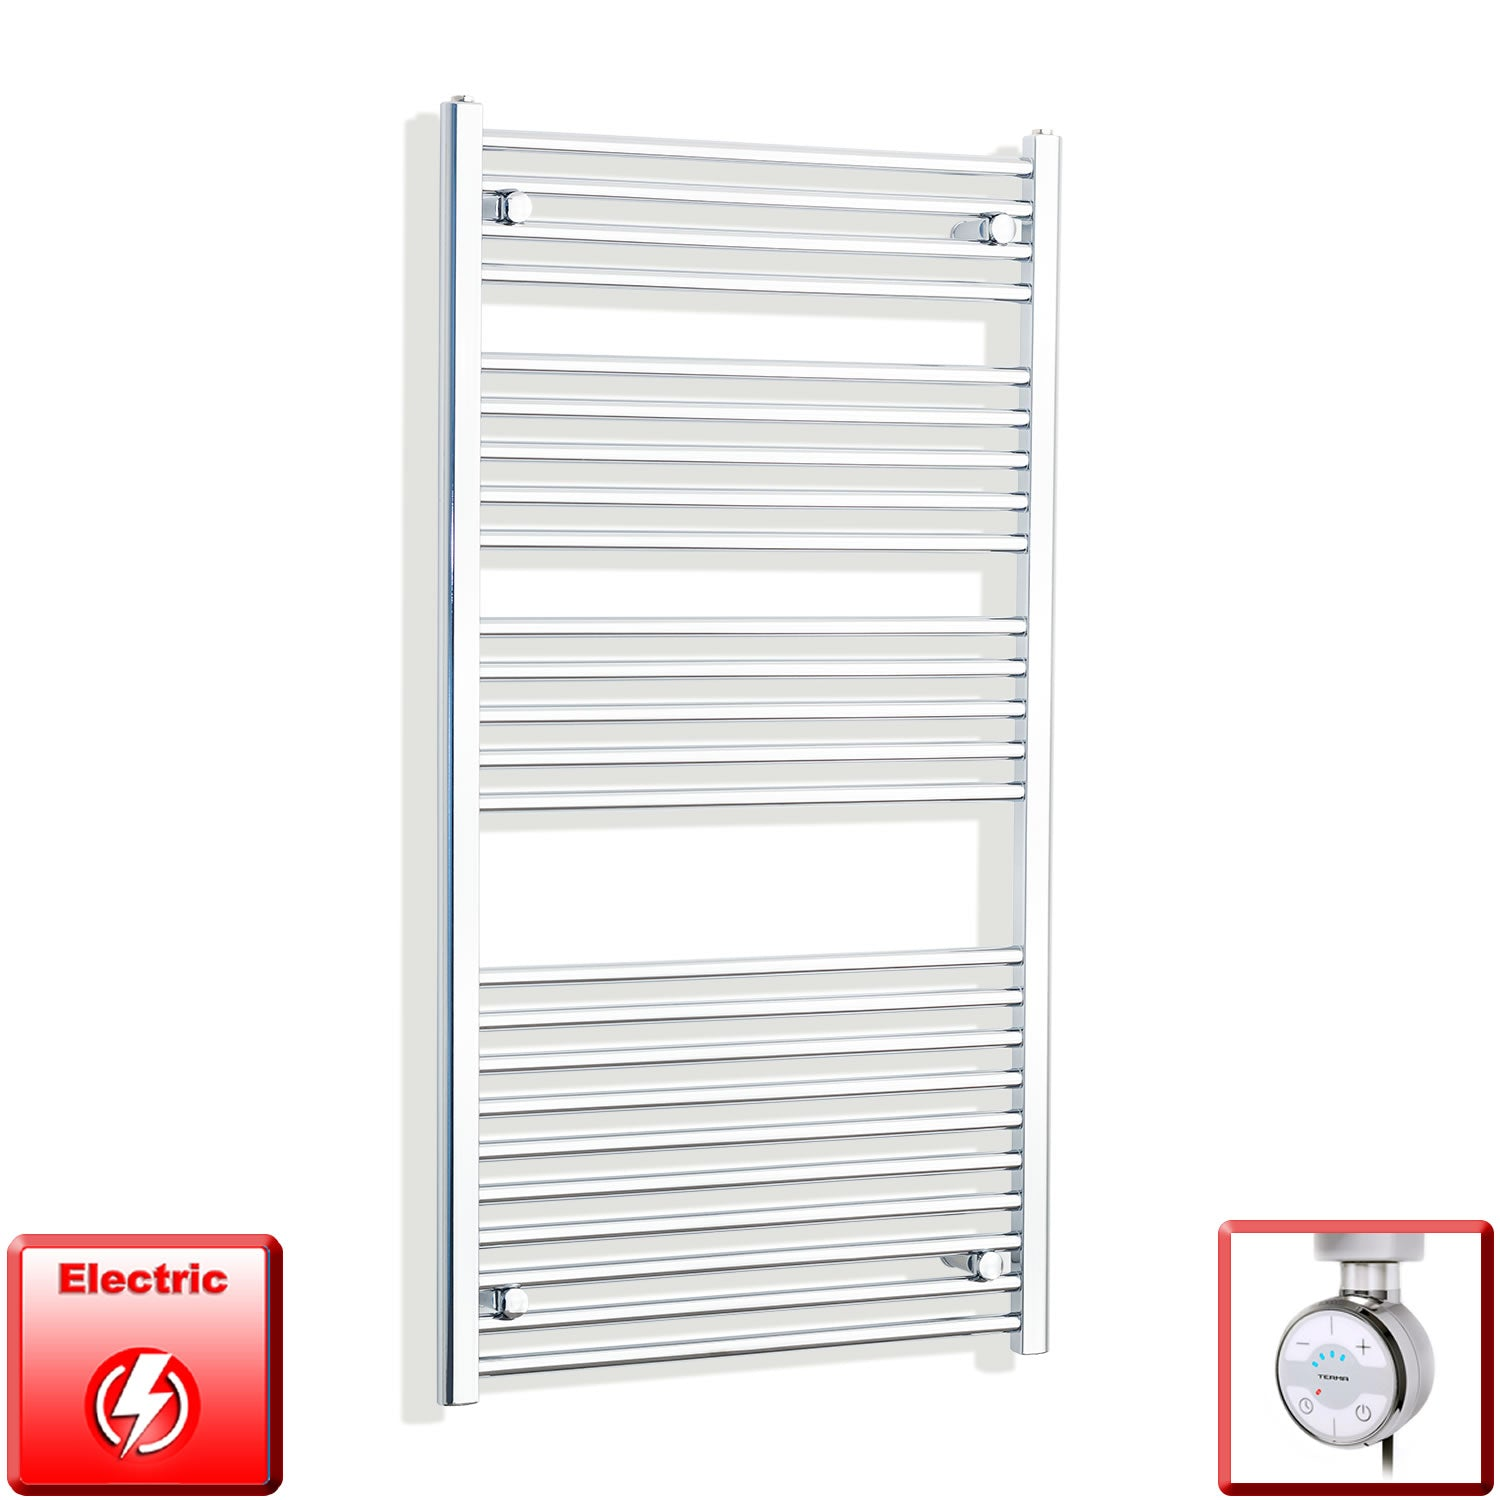 700mm Wide 1300mm High Flat Or Curved Chrome Pre-Filled Electric Heated Towel Rail Radiator HTR,MOA Thermostatic Element / Straight